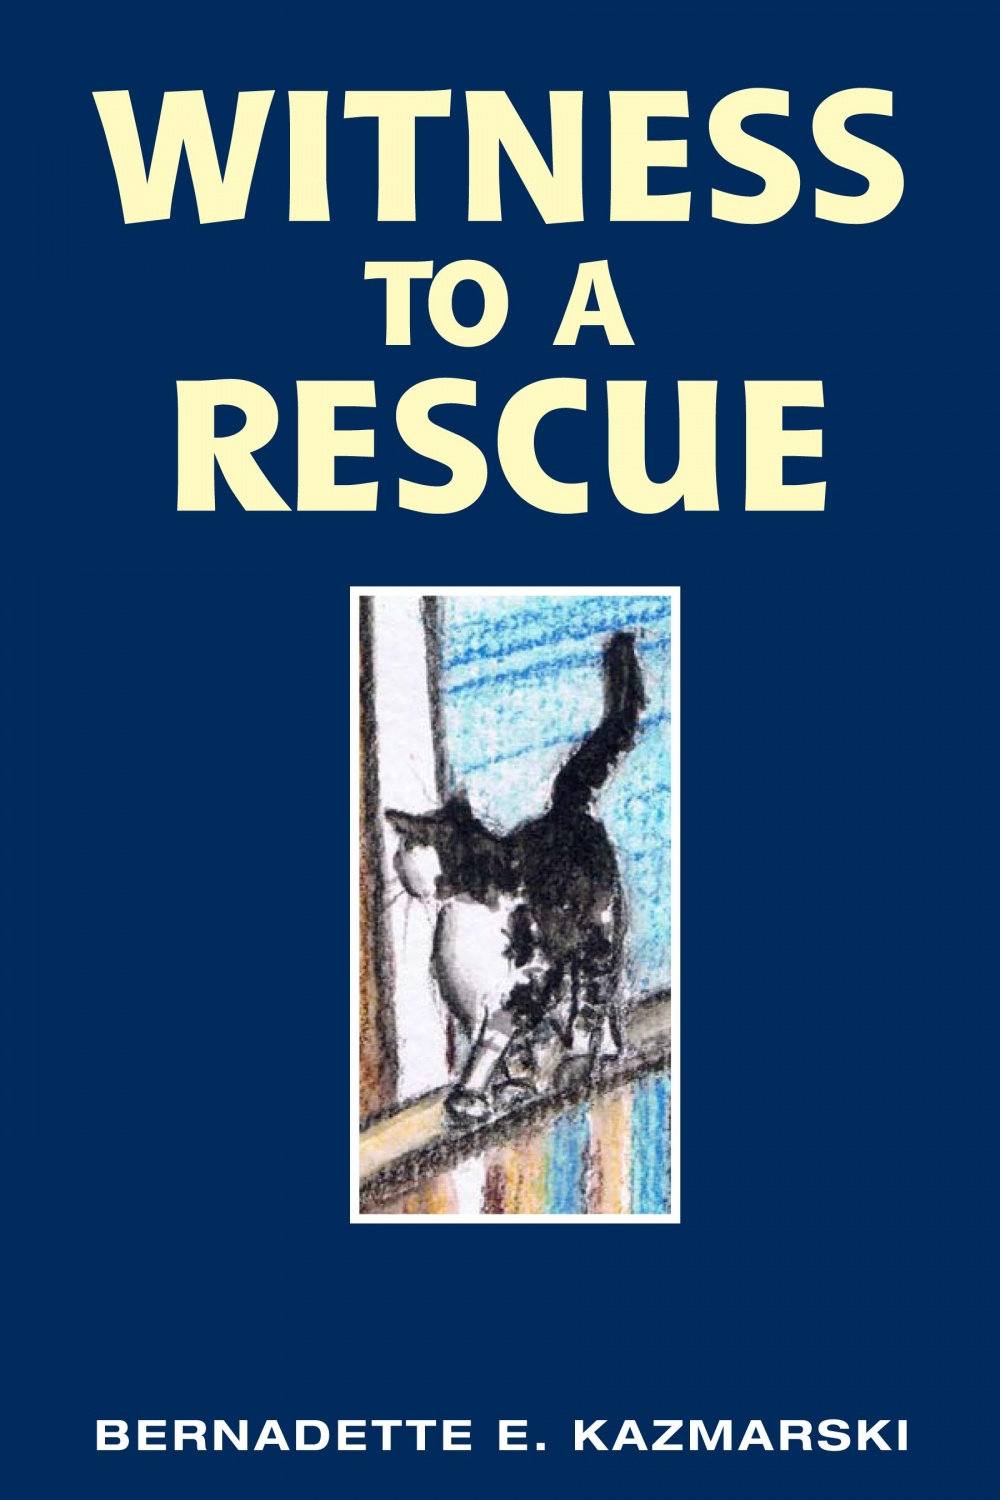 Witness to a Rescue, e-book © B.E. Kazmarski